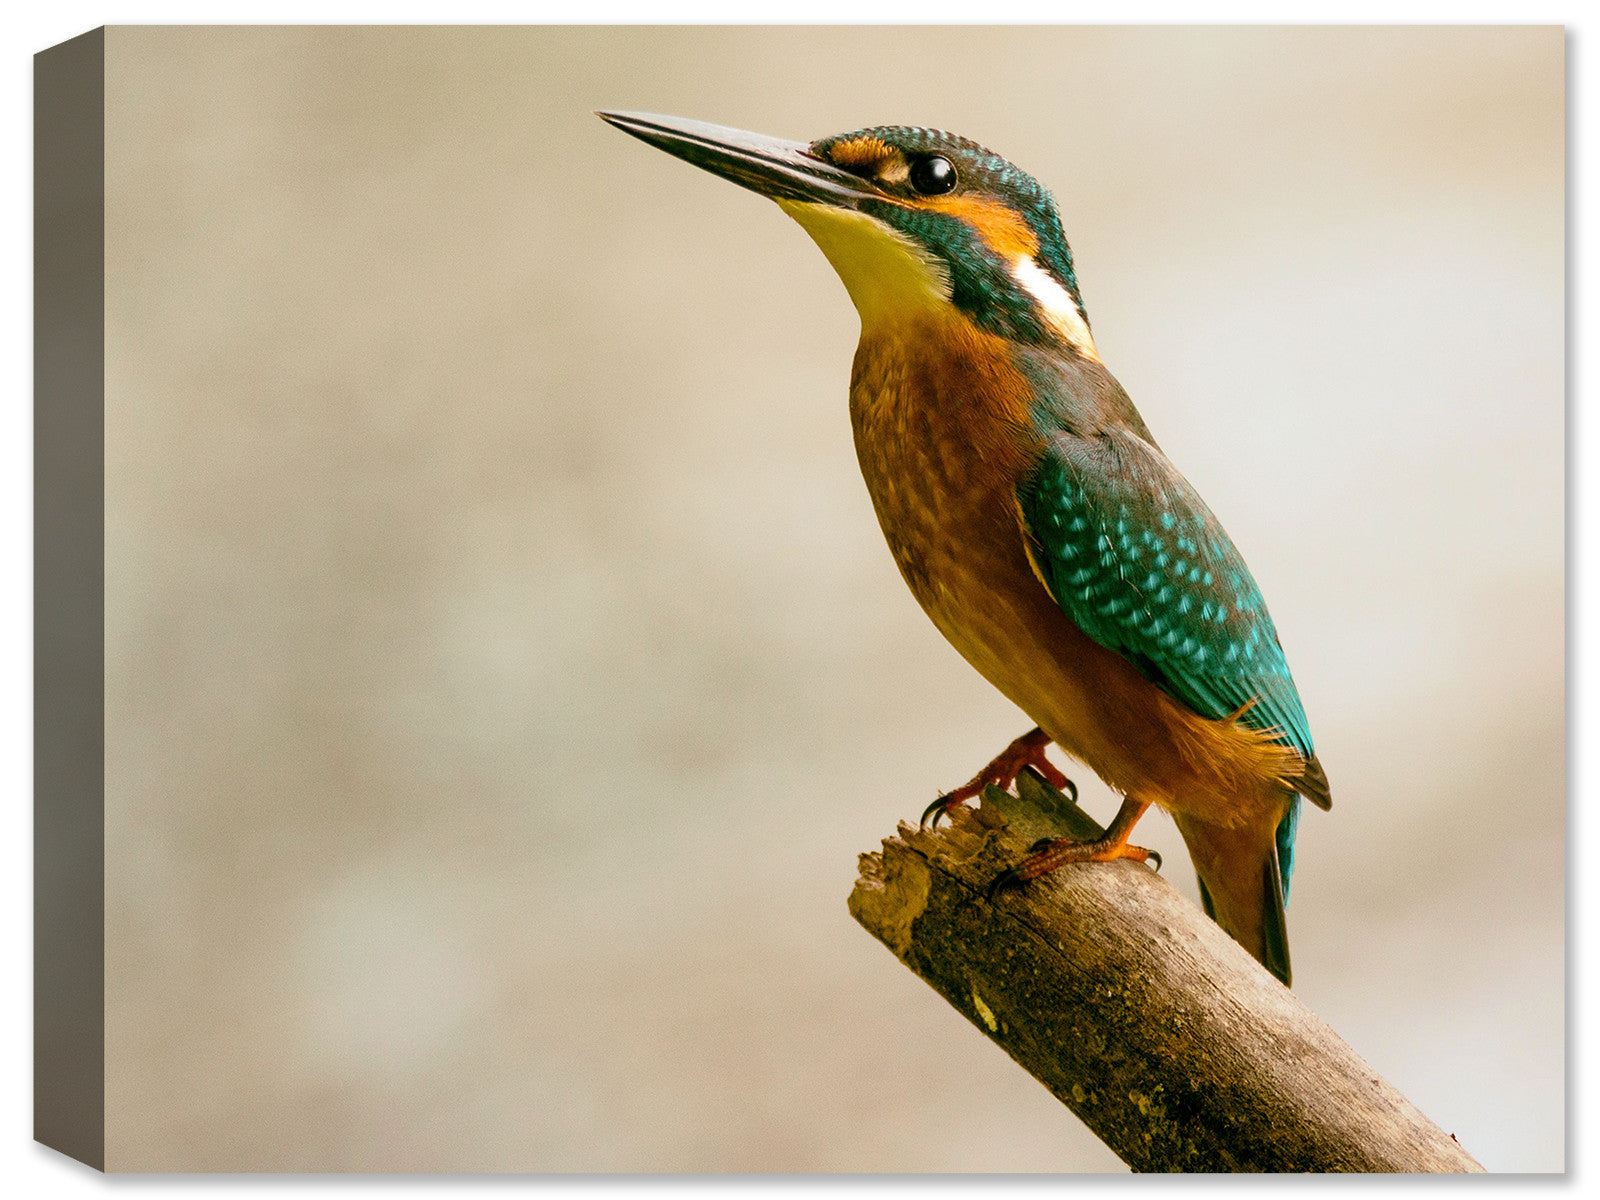 Kingfisher sitting on a Branch- Weatherprint - Canvas Art Plus